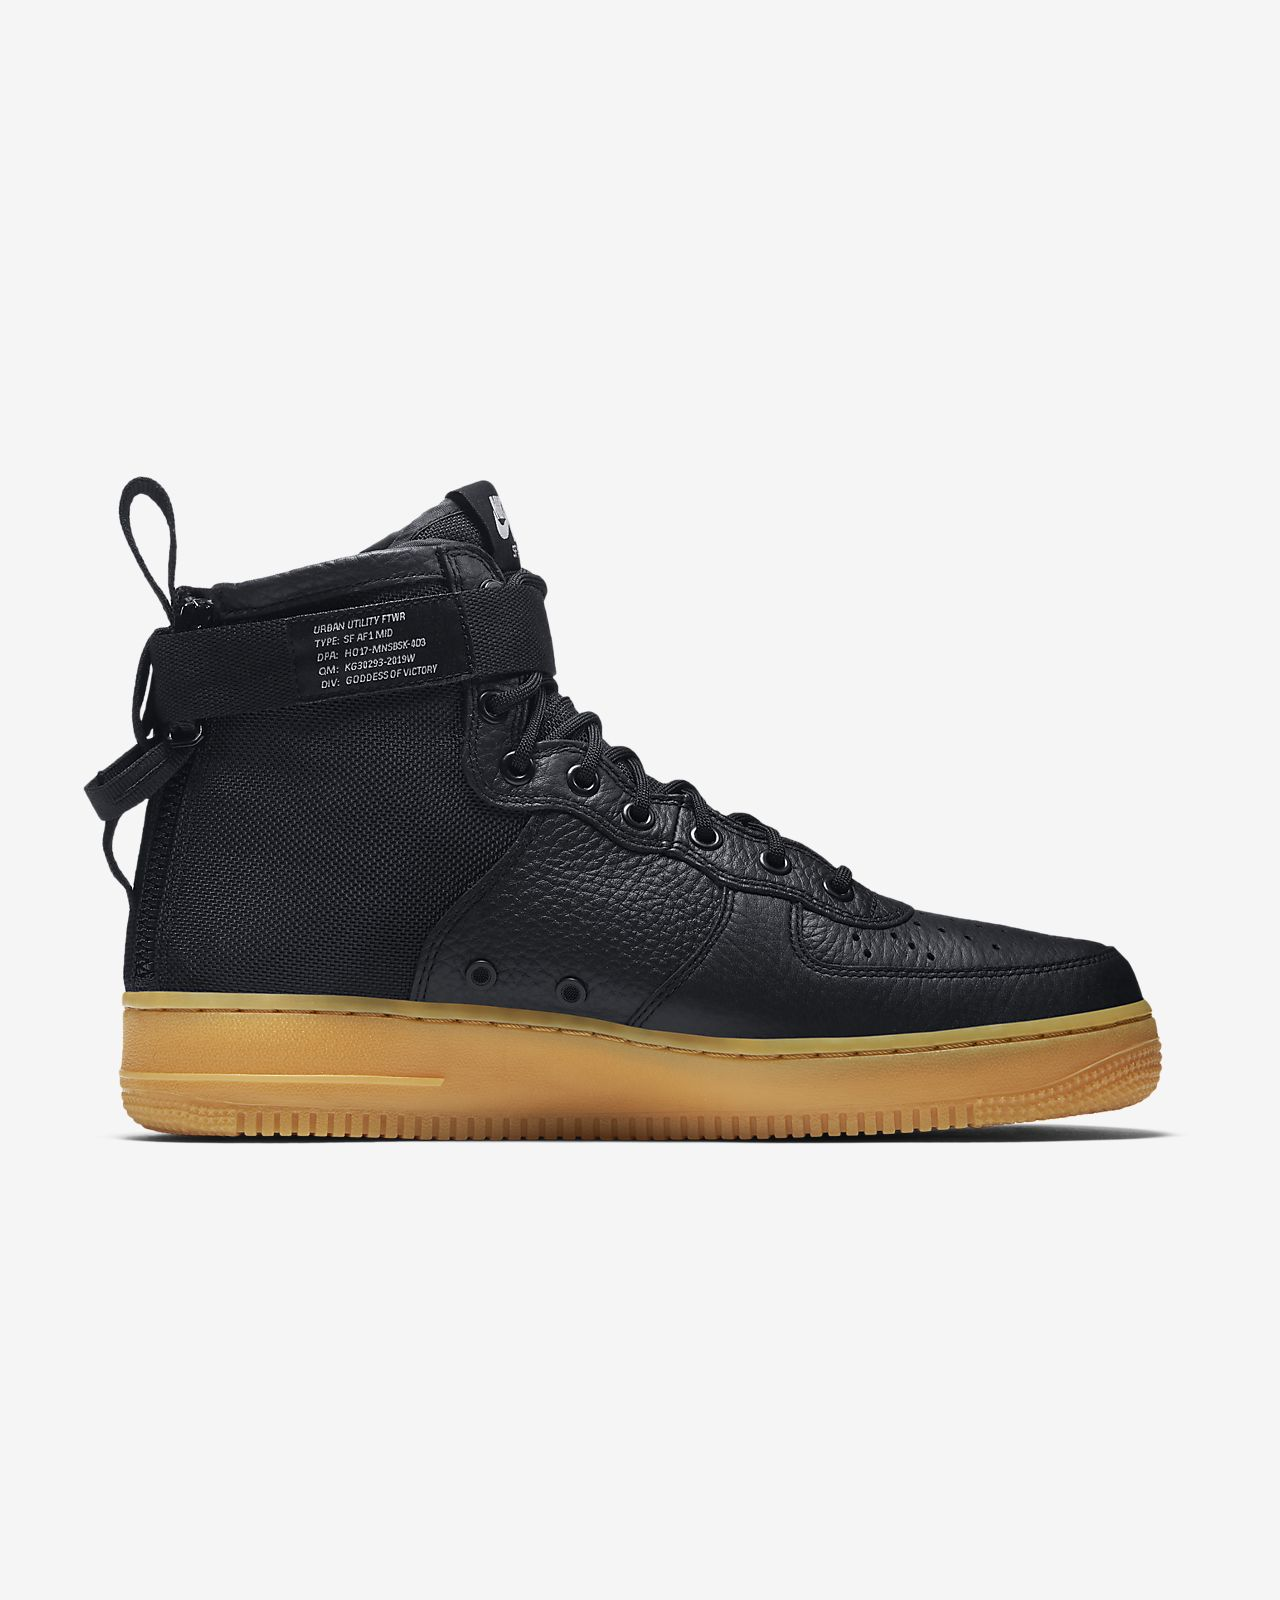 Nike SF Air Force 1 Mid Men's Lifestyle Shoes Brown/Black bA5326E